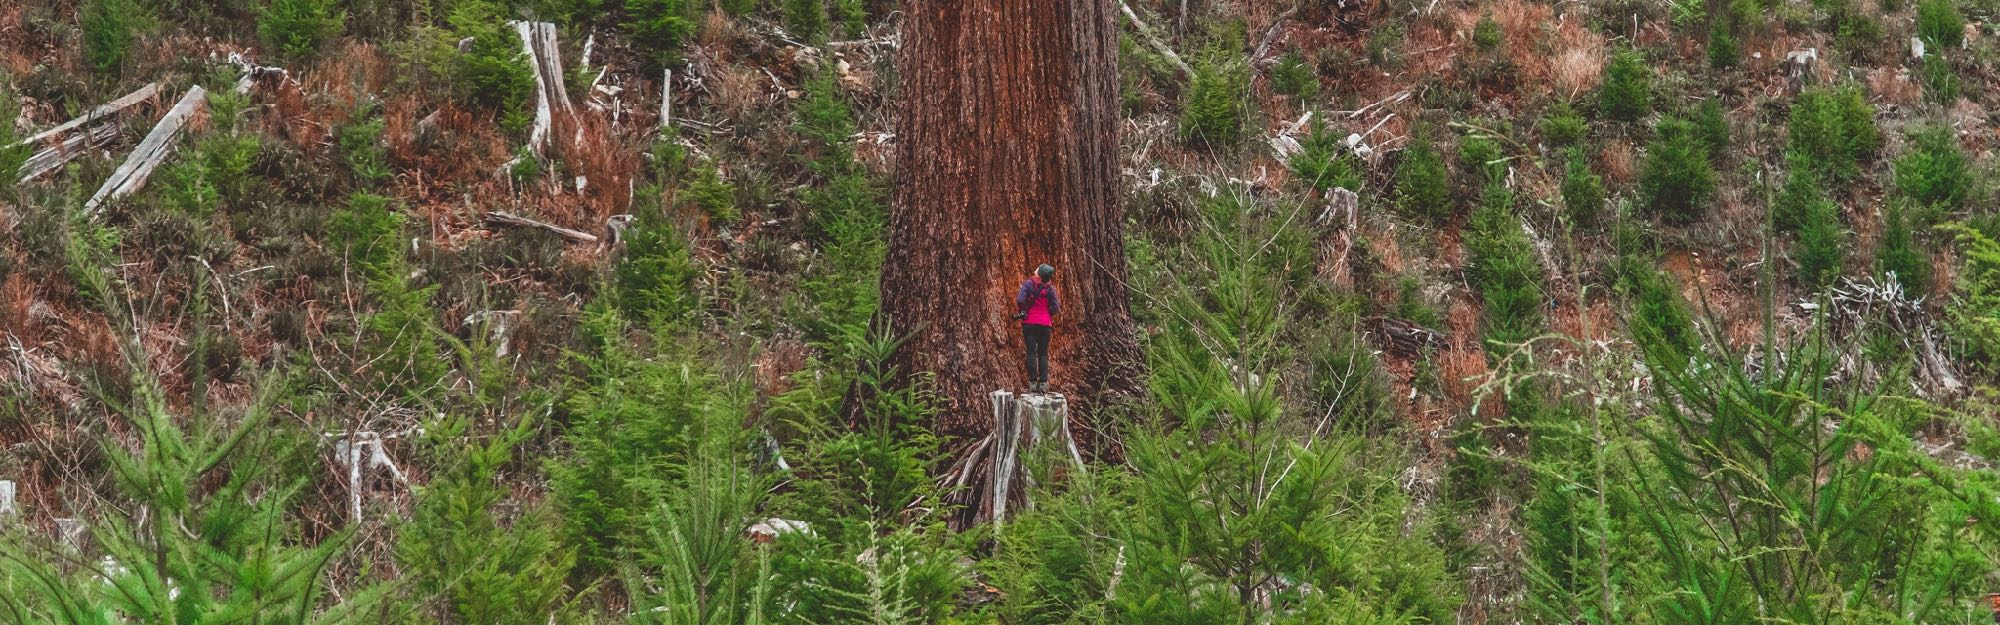 Ancient Old Growth Forests of Port Renfrew